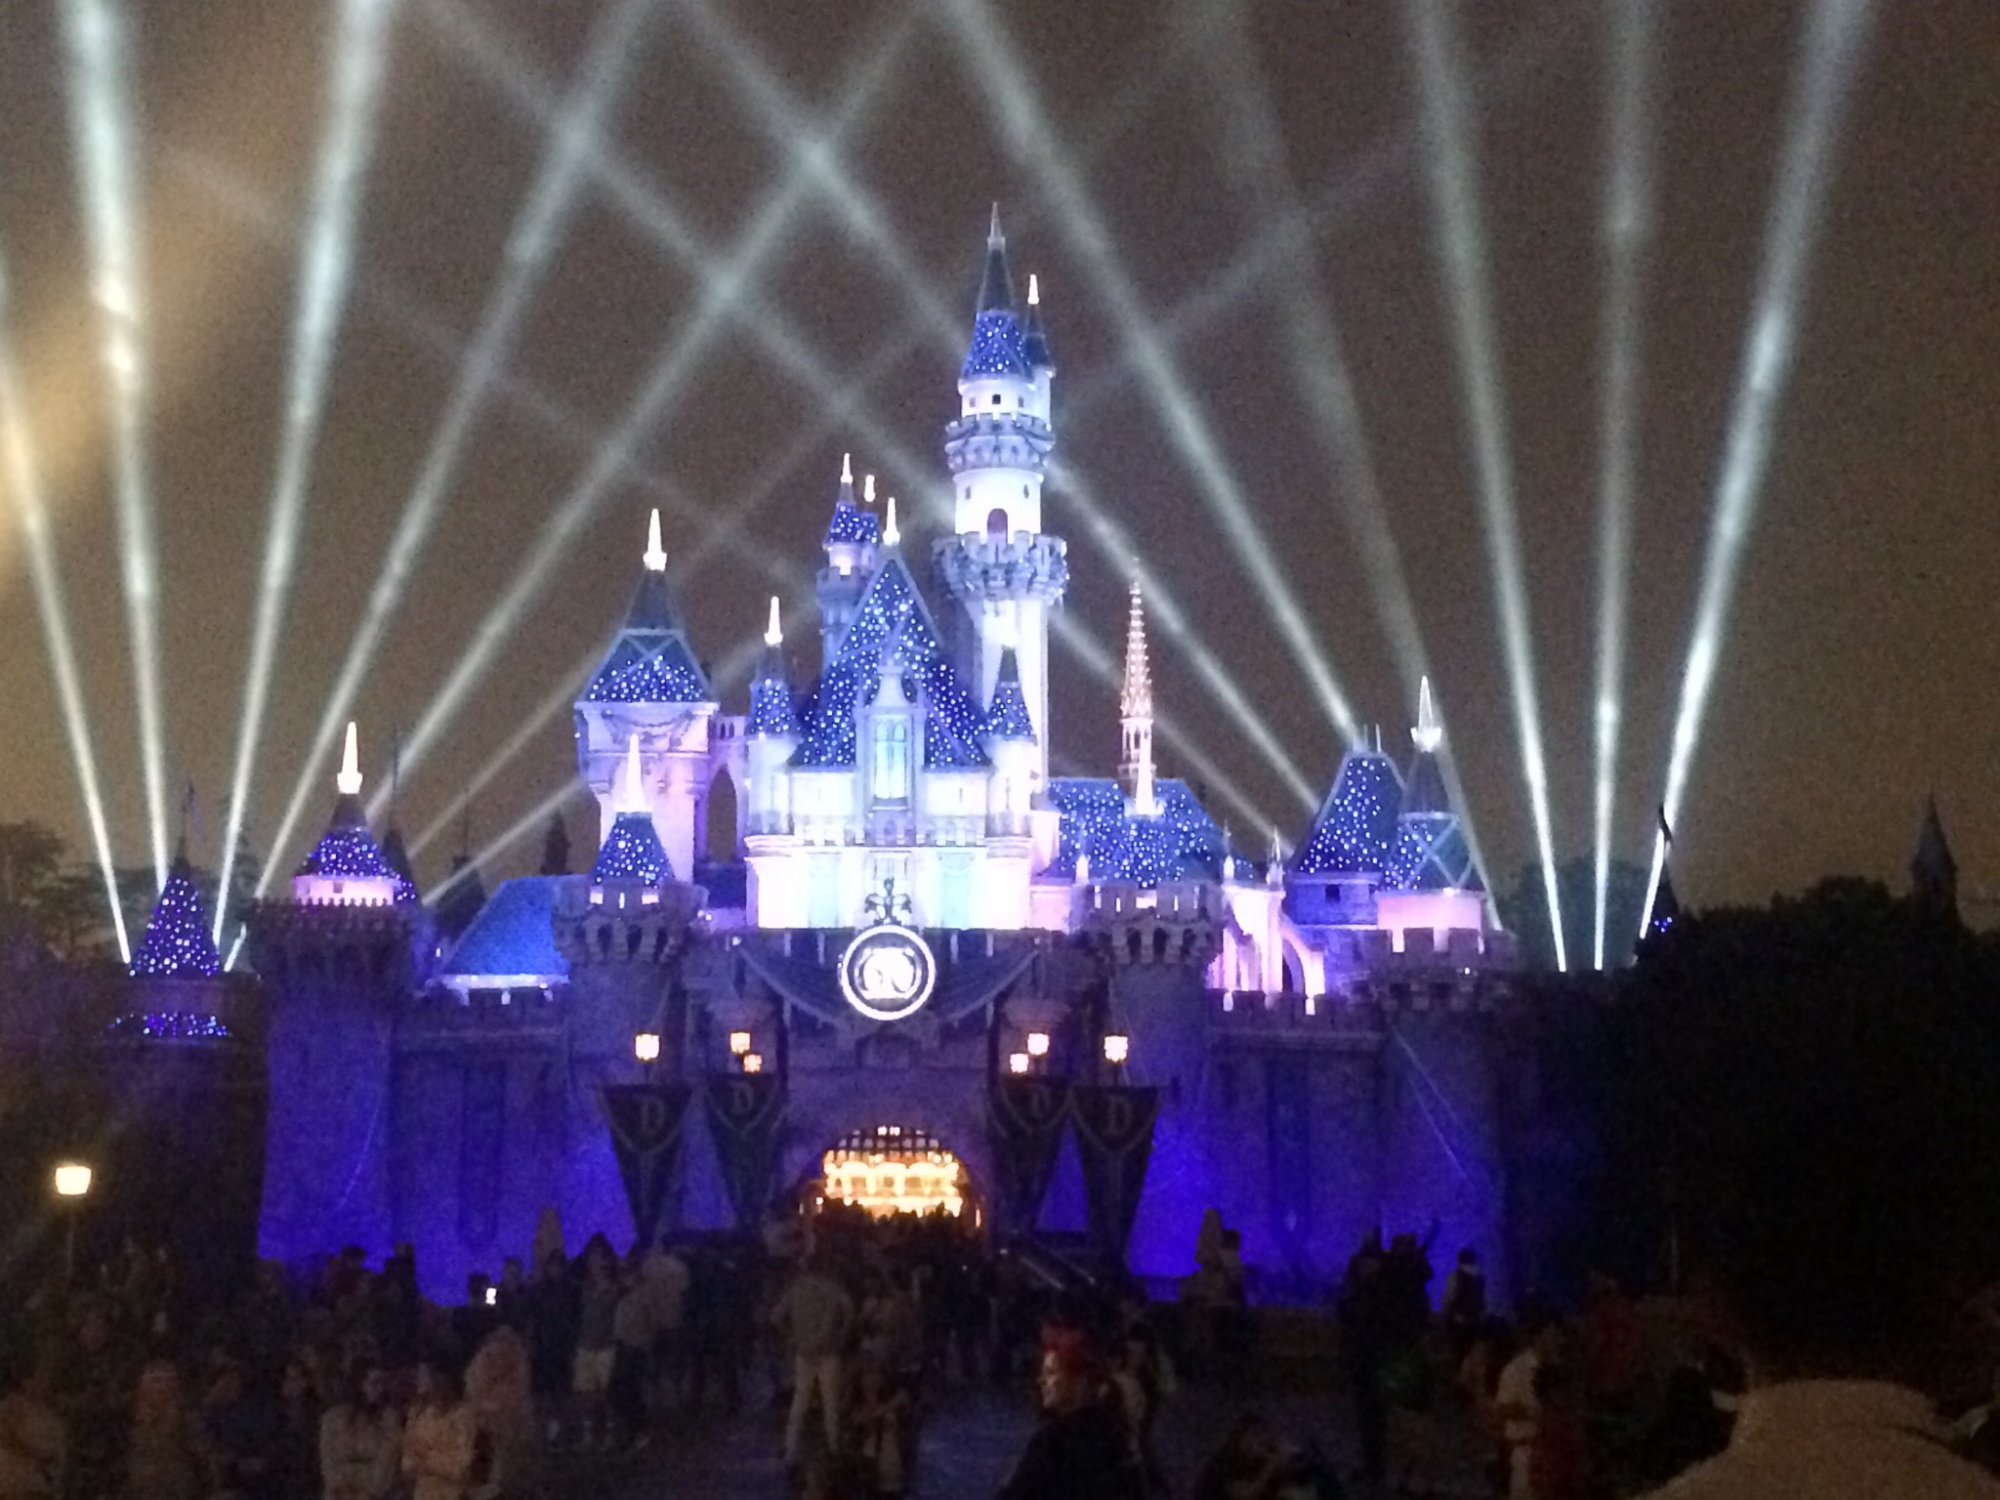 Beautiful picture of the castle